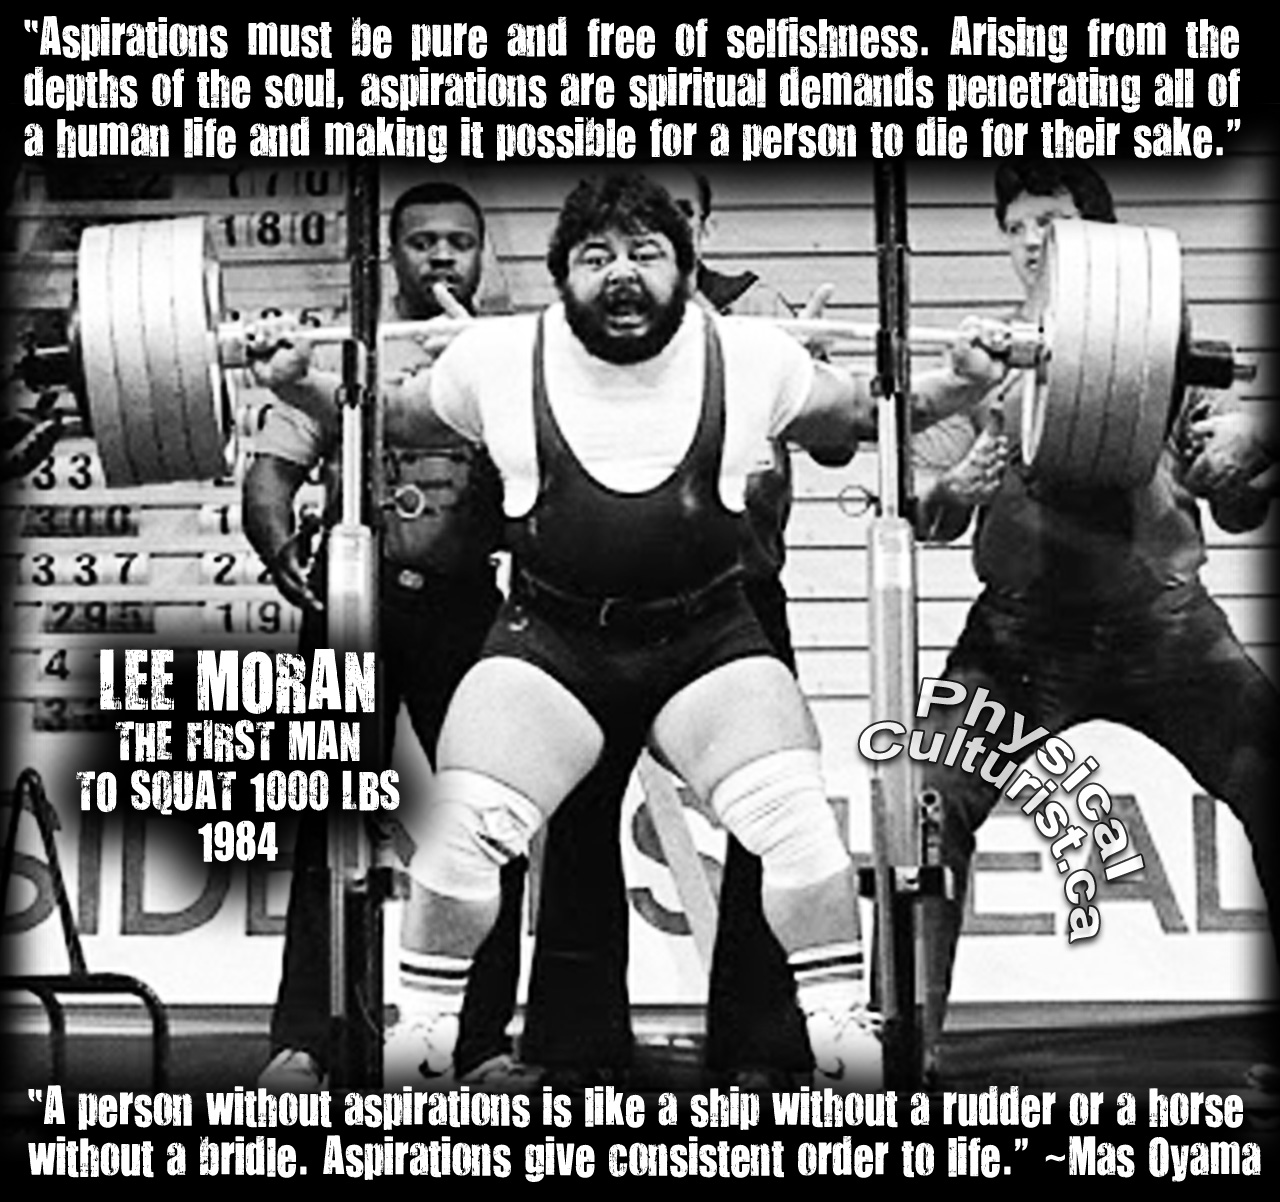 Lee Moran - the first 1000 lbs pound squat in history - Aspirations must be pure and free of selfishness. Arising from the depths of the soul, aspirations are spiritual demands penetrating all of a human life and making it possible for a person to die for their sake. A person without aspirations is like a ship without a rudder or a horse without a bridle. Aspirations give consistent order to life. Mas Oyama